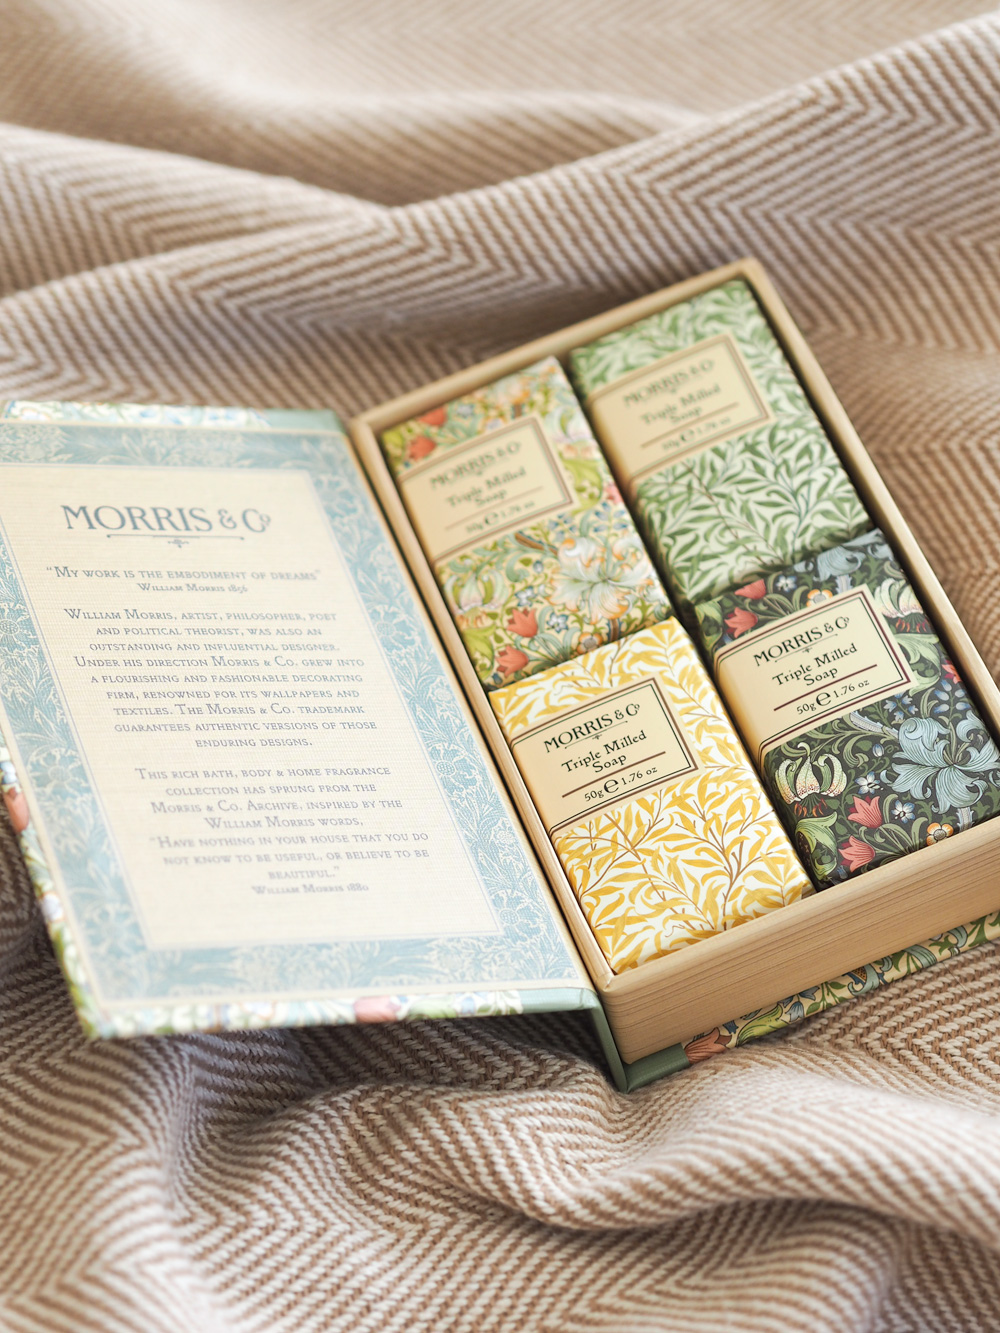 Morris & Co soaps from Studio.co.uk, the home of affordable interiors